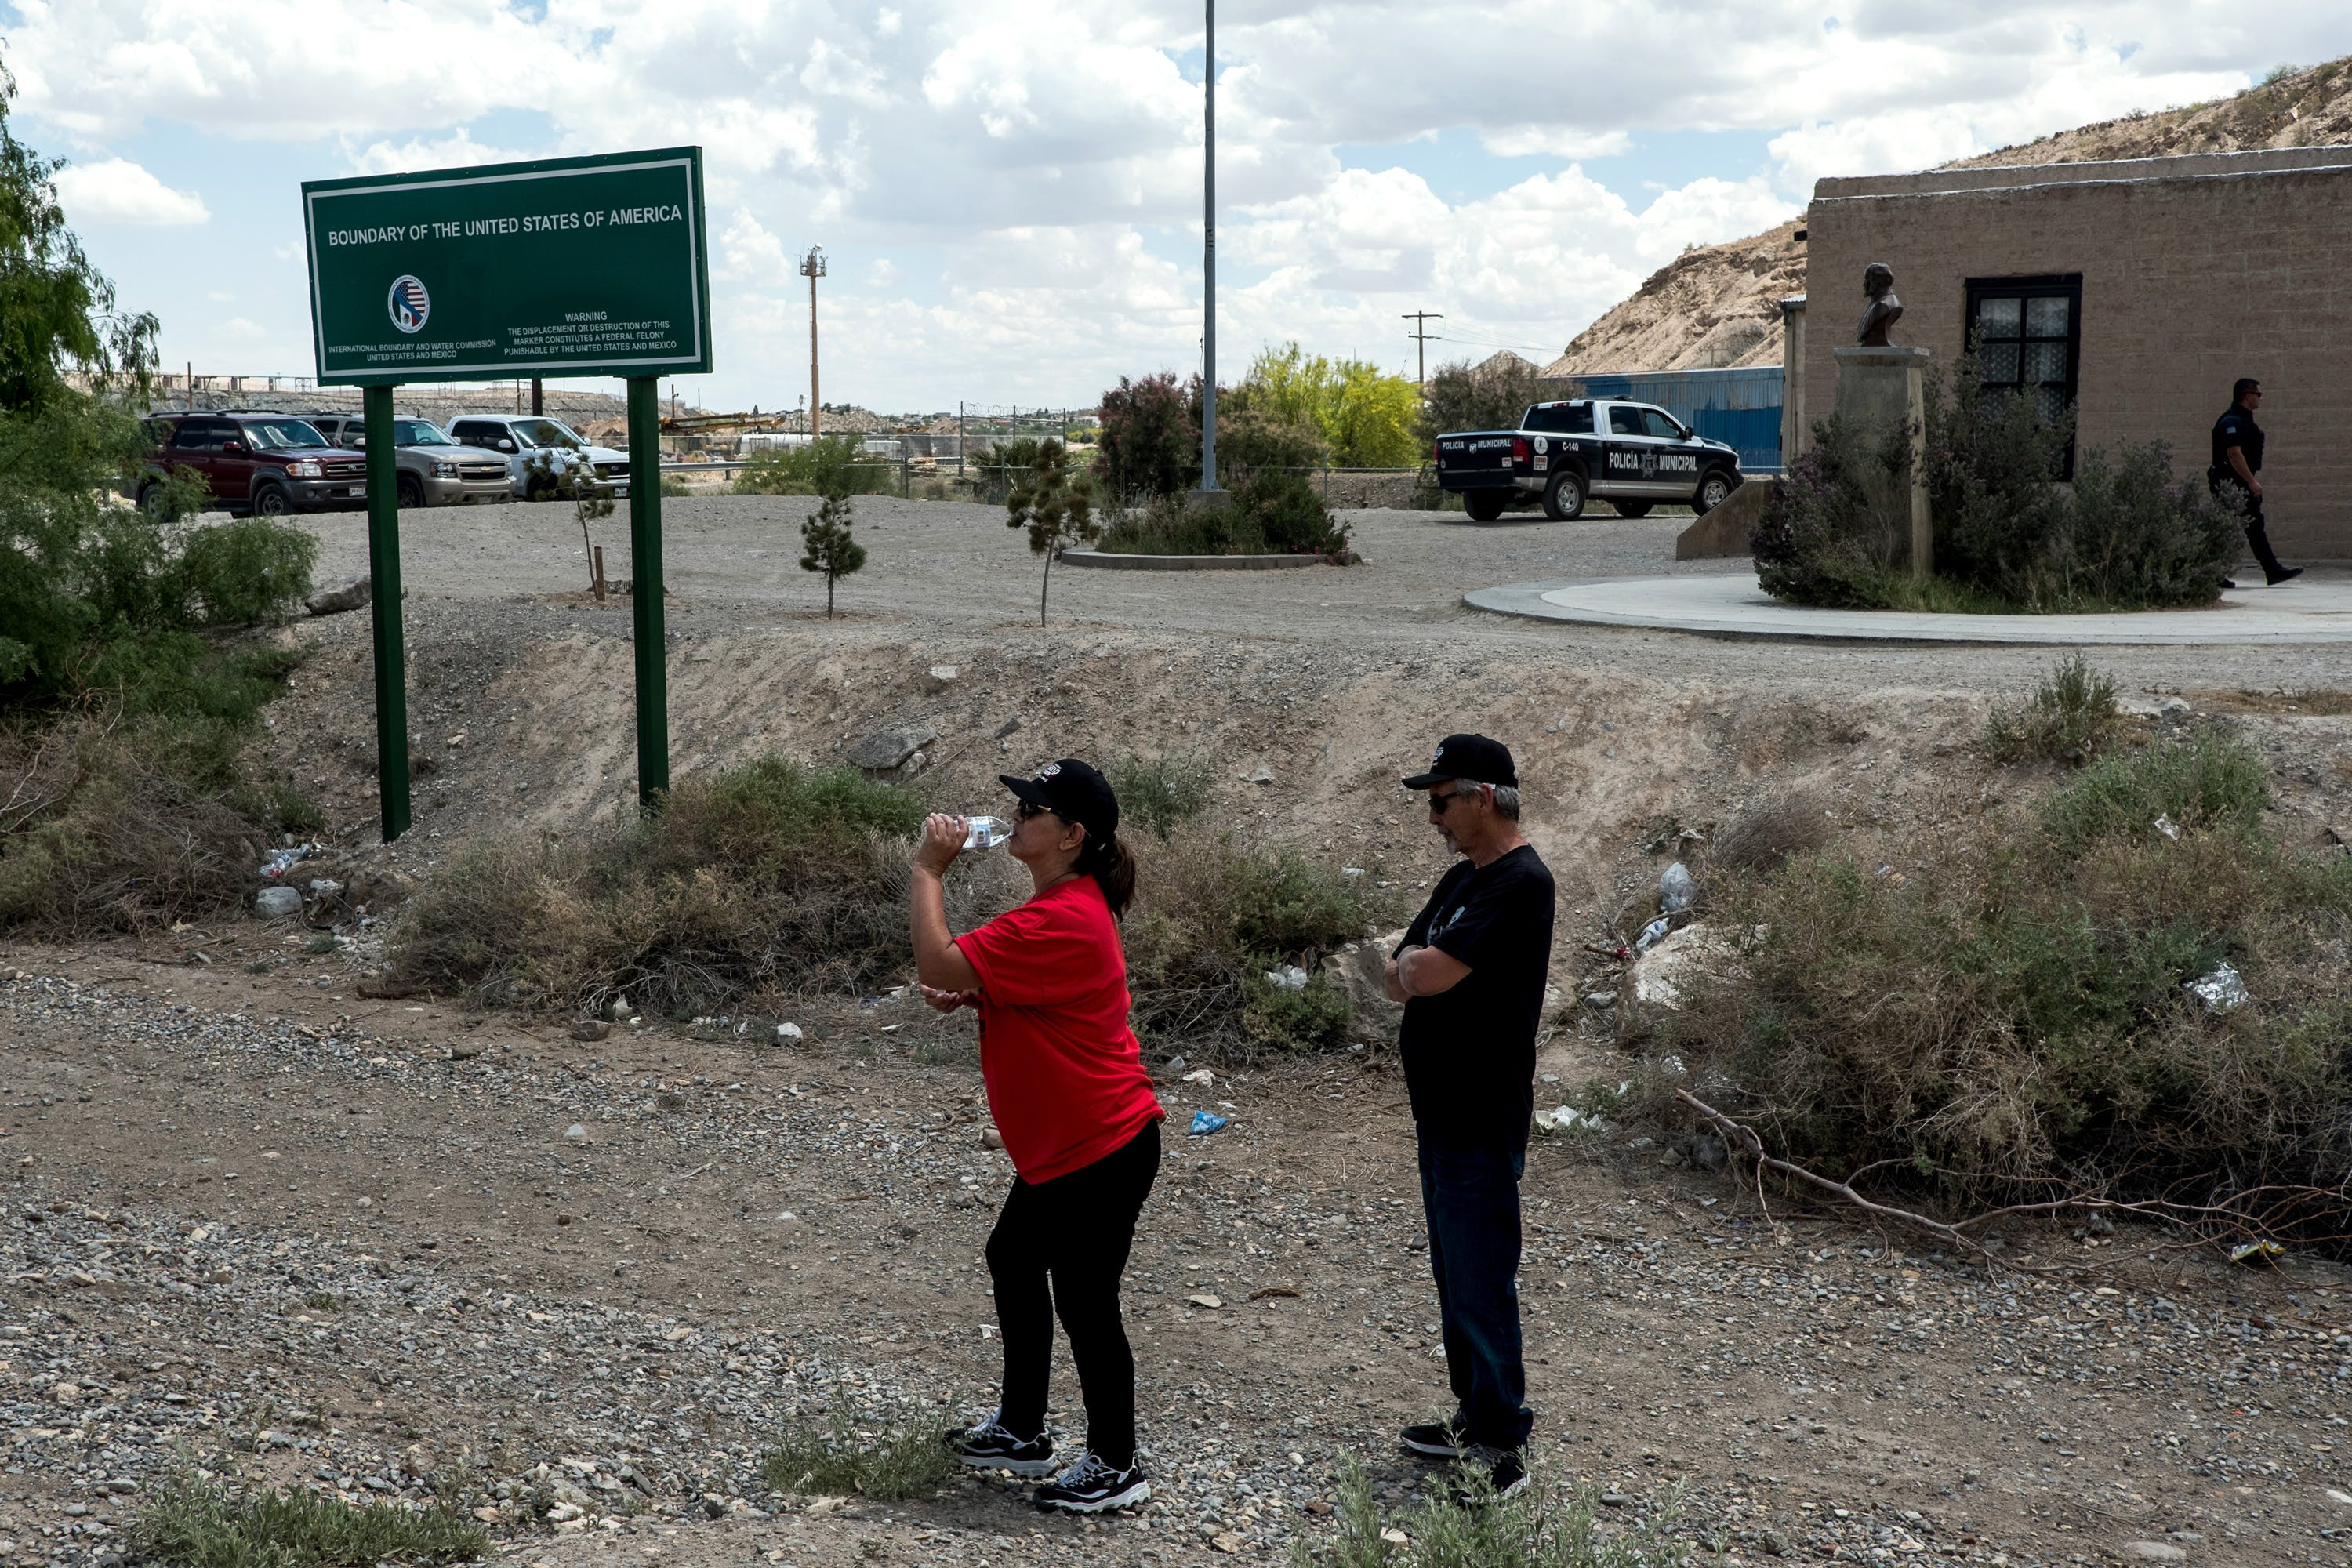 Nancy Esquivel and her husband Sam, both of El Paso, walk nearby the U.S.-México border on the outskirts of Sunland Park, New Mexico, Saturday, May 11, 2019. Both had crossed into México and back without being apprehended by officials on either side. (Joel Angel Juárez for The Intercept)